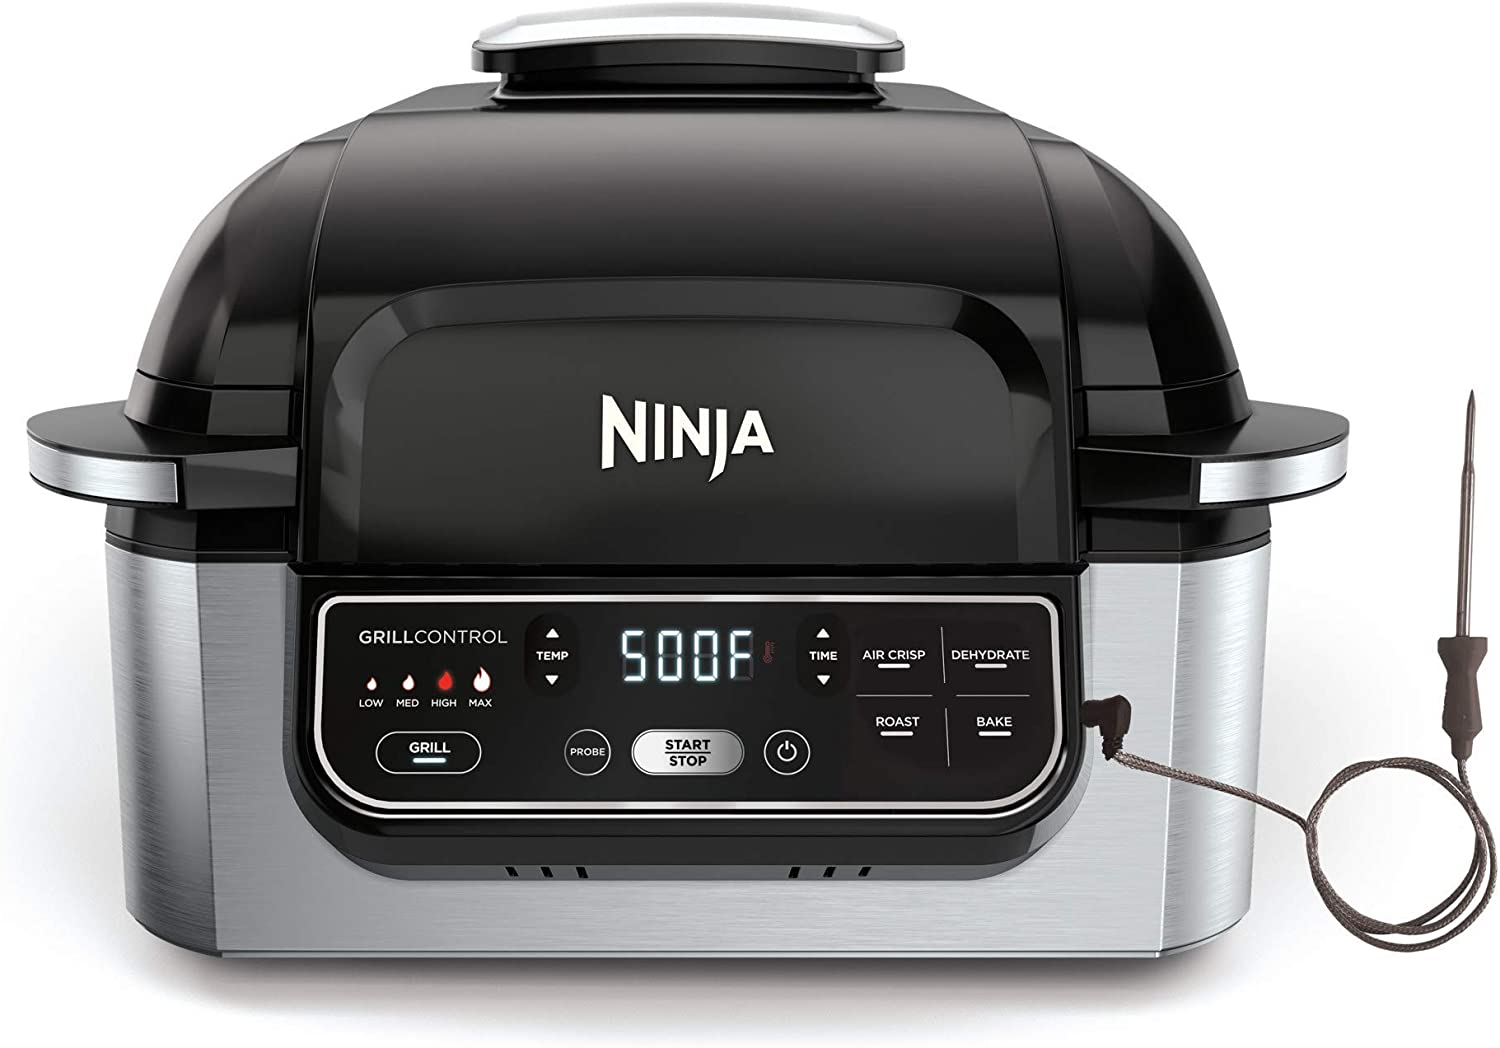 Ninja Foodi Pro 5-in-1 Integrated Smart Probe and Cyclonic Technology Indoor Grill, Air Fryer, Roast, Bake, Dehydrate (AG400), 10